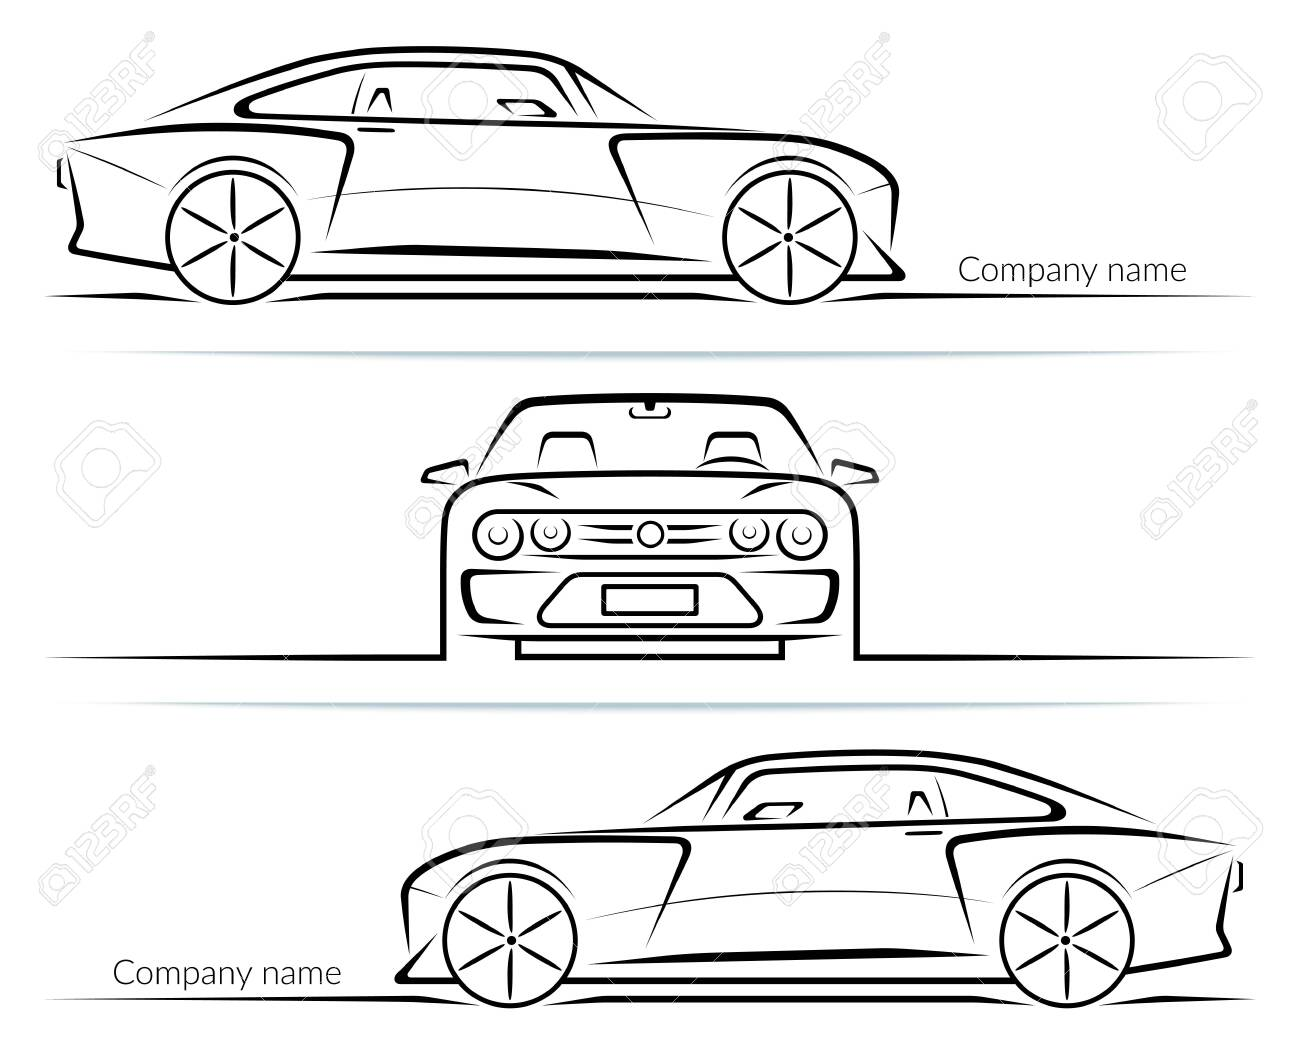 Set of sports car silhouettes outlines contours isolated on white background. Vector illustration - 151579185